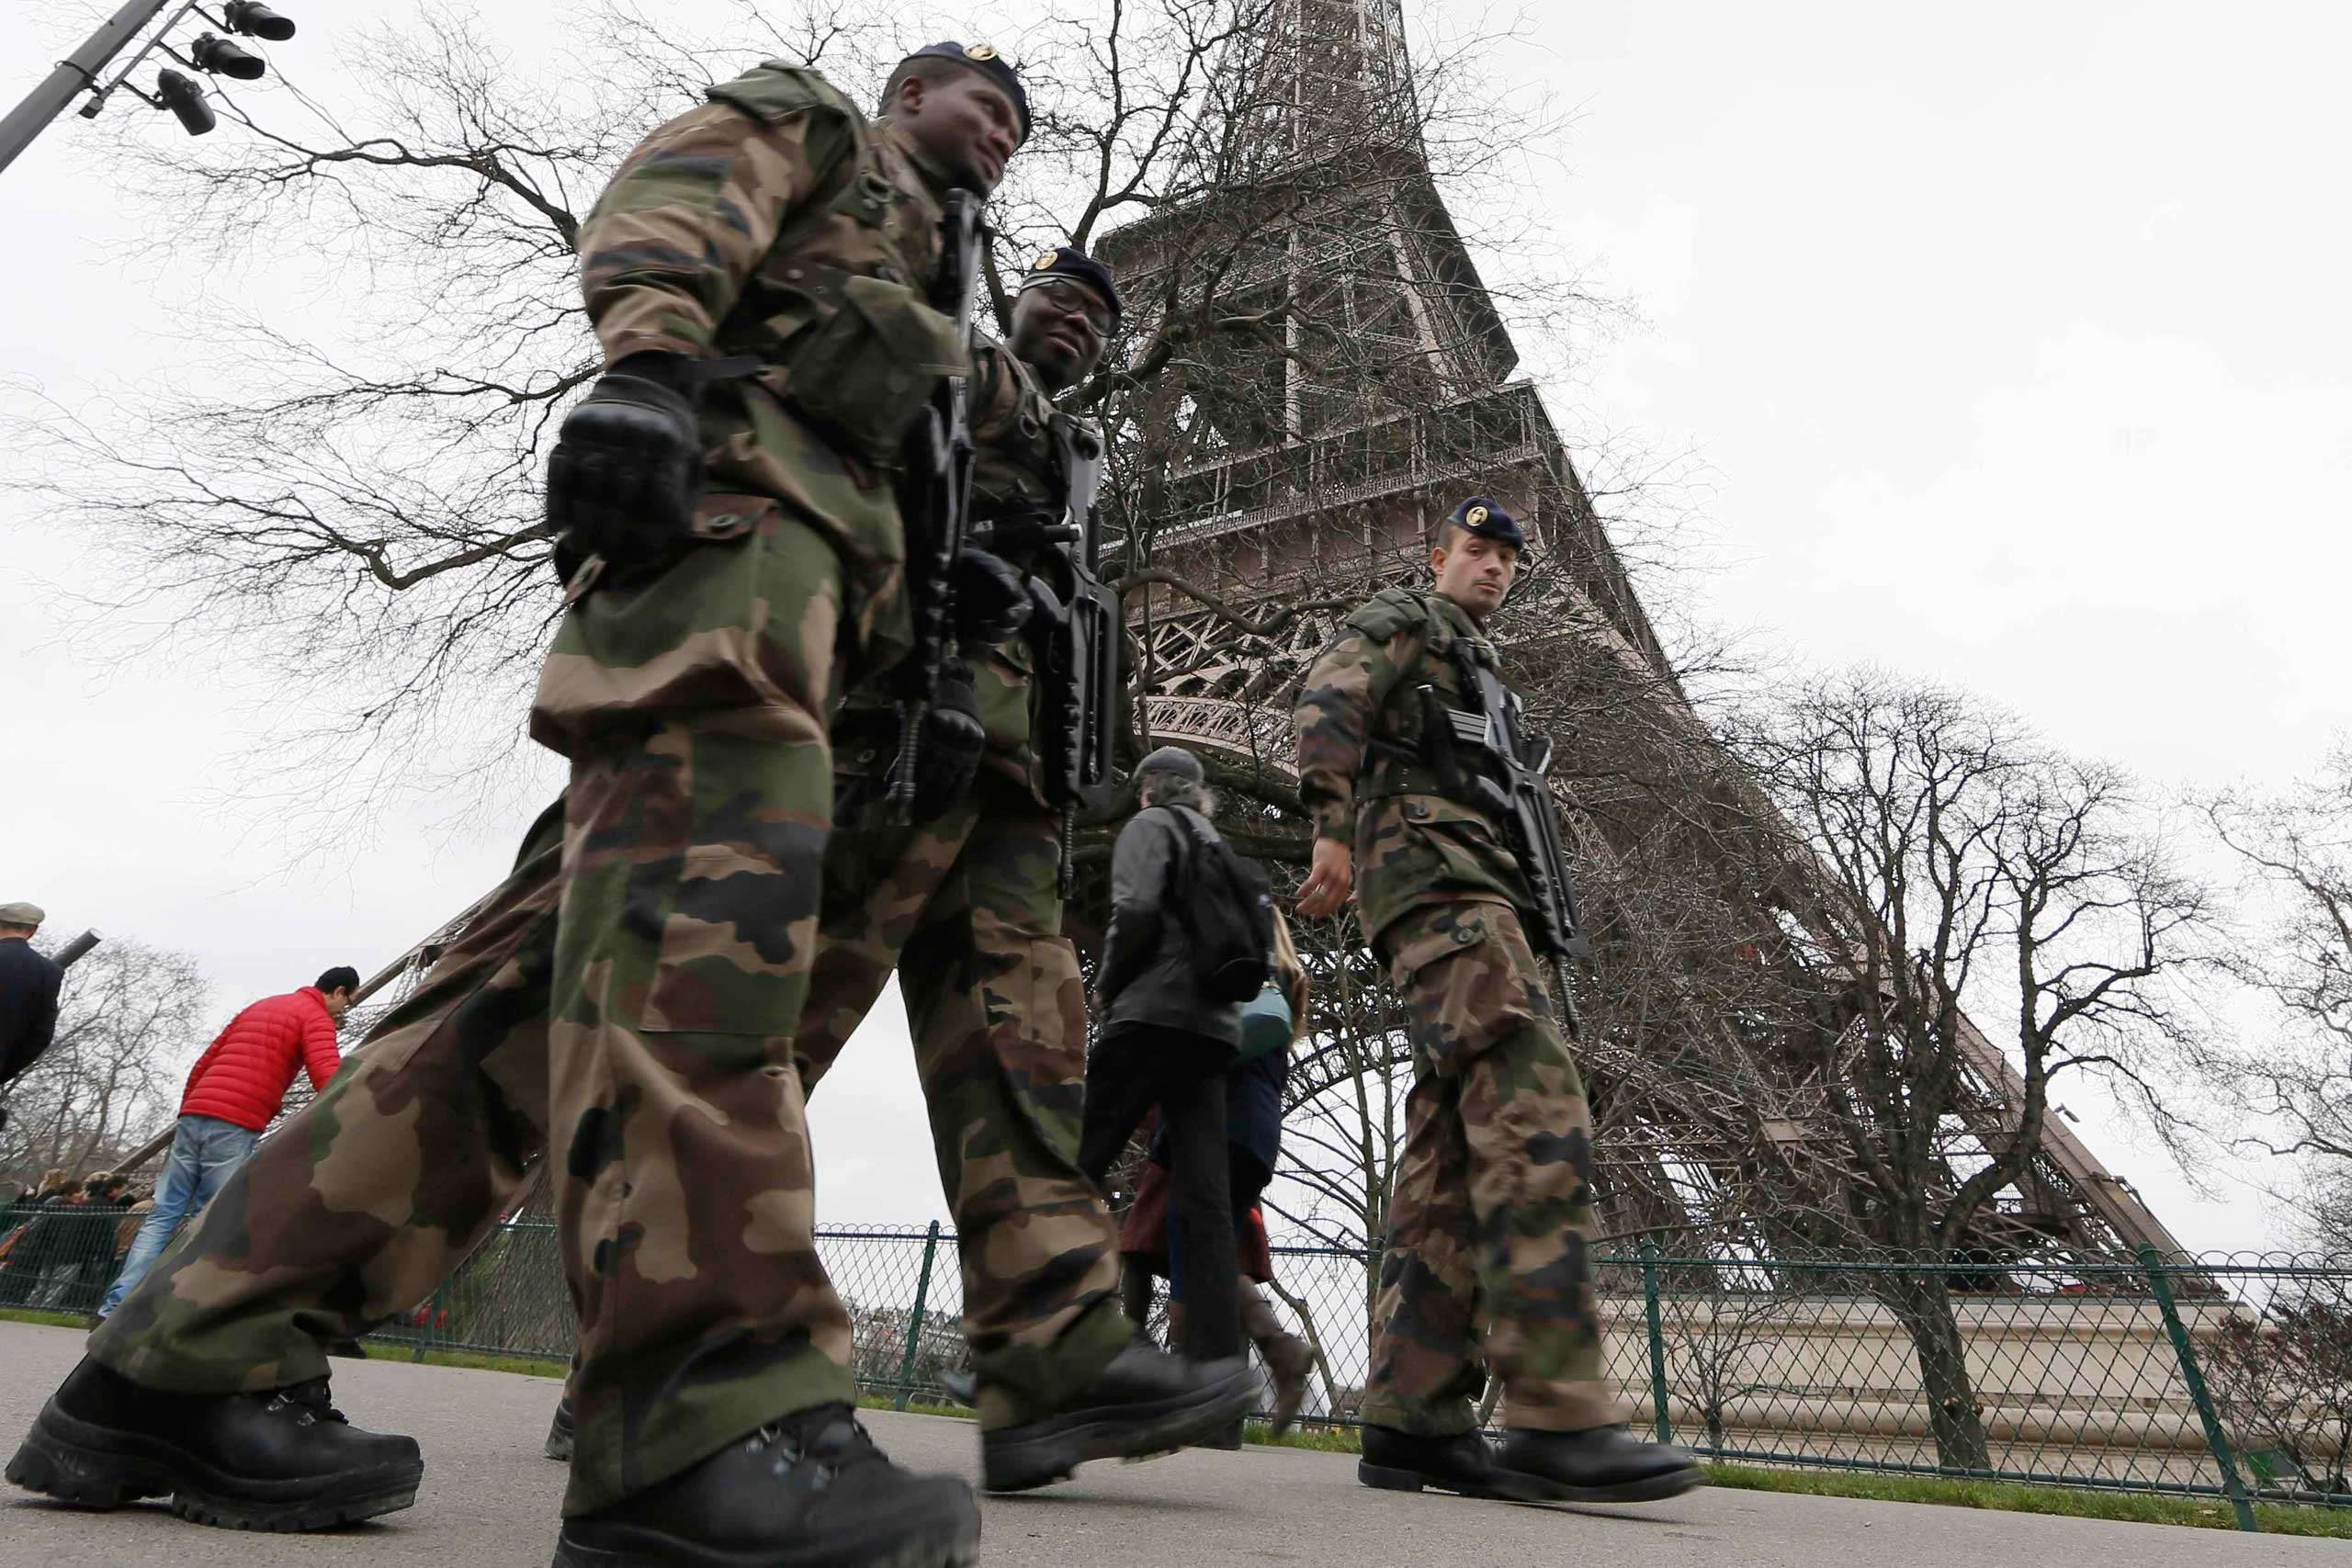 French soldiers patrol near the Eiffel Tower in Paris as part of the  Vigipirate  security plan on Dec. 23, 2014.